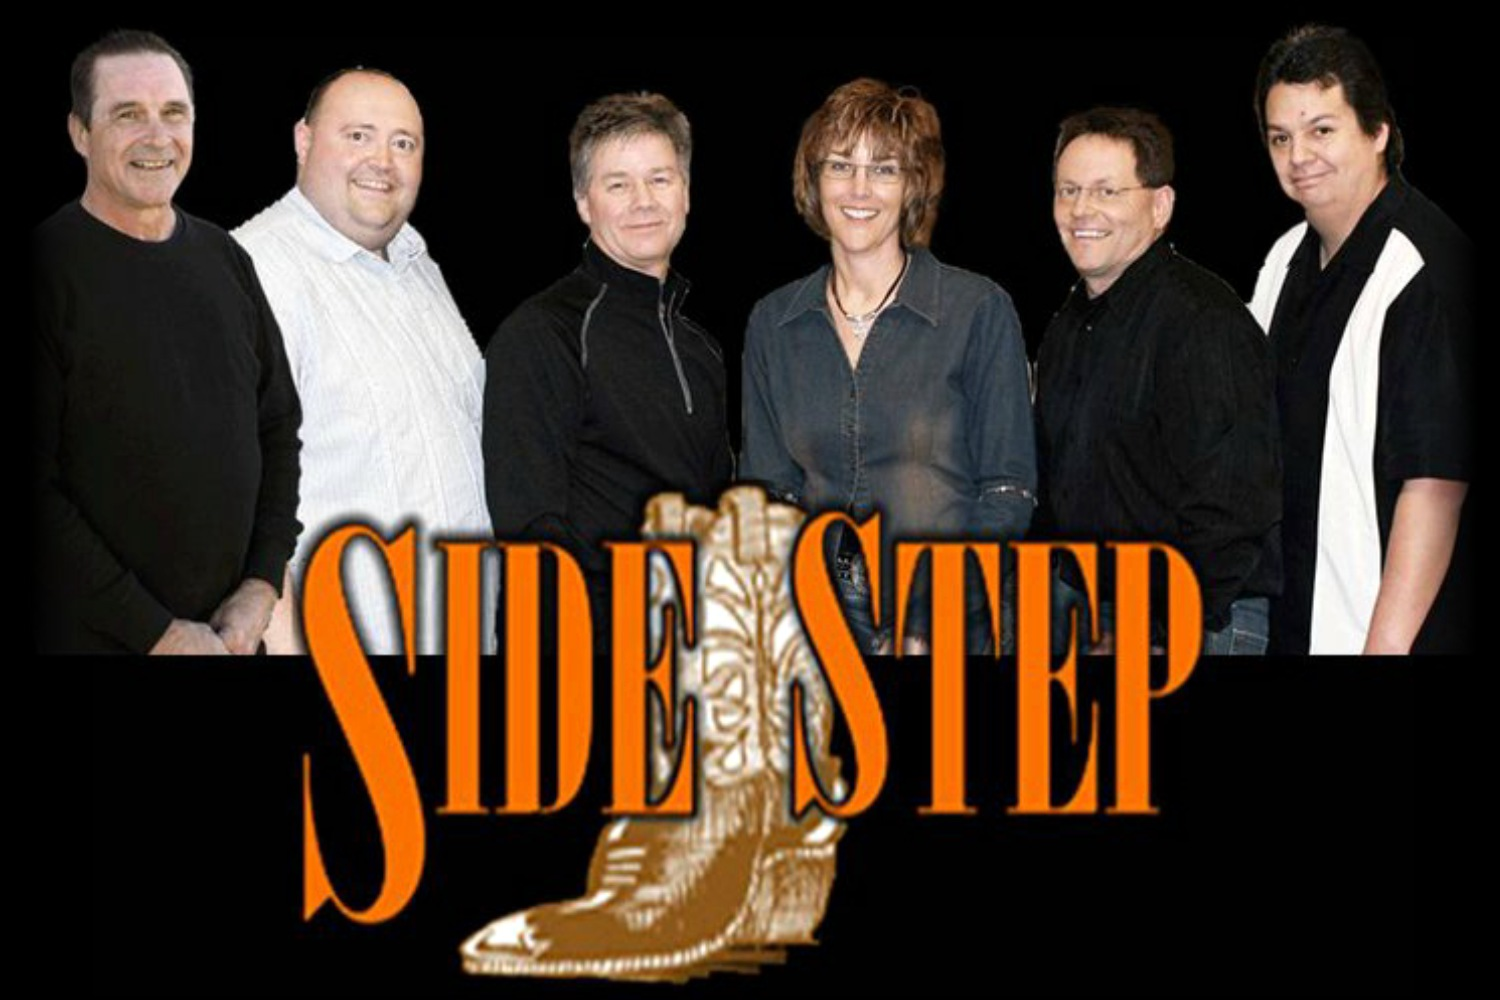 Northeast Nebraska Musicians SideStep from Columbus, NE